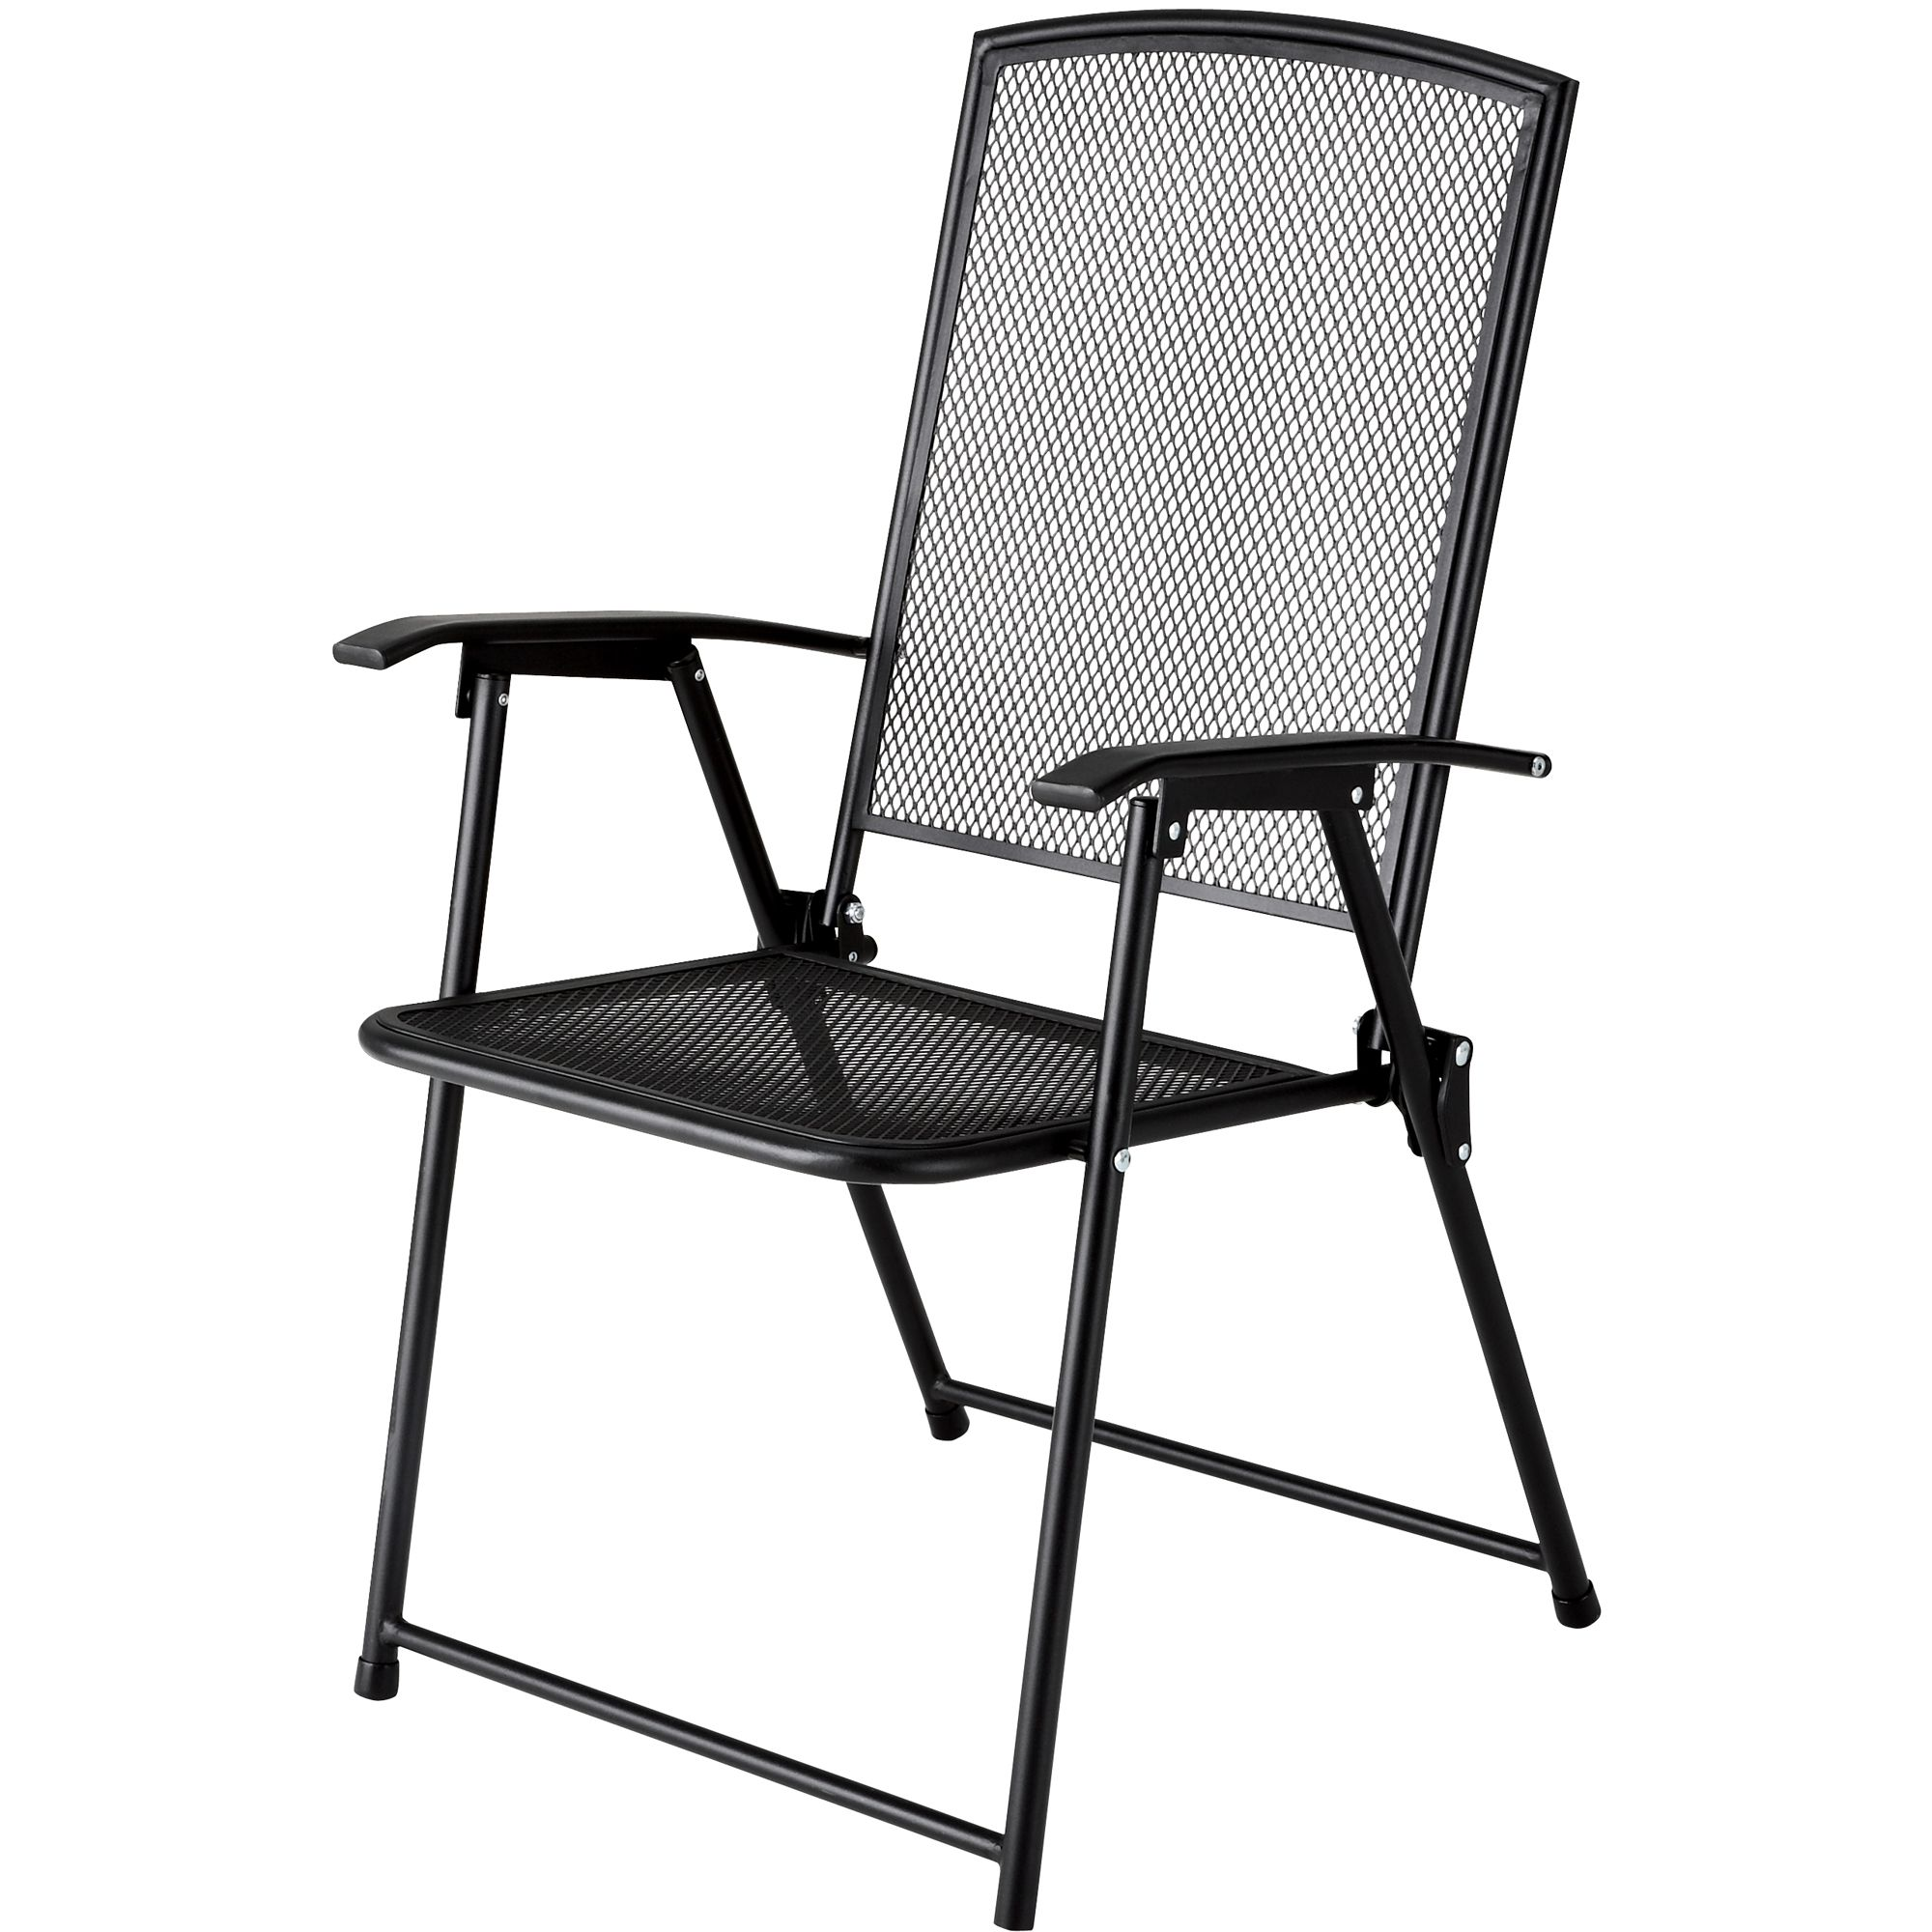 Patio Folding Chairs Brief Overview About The Folding Patio Chairs